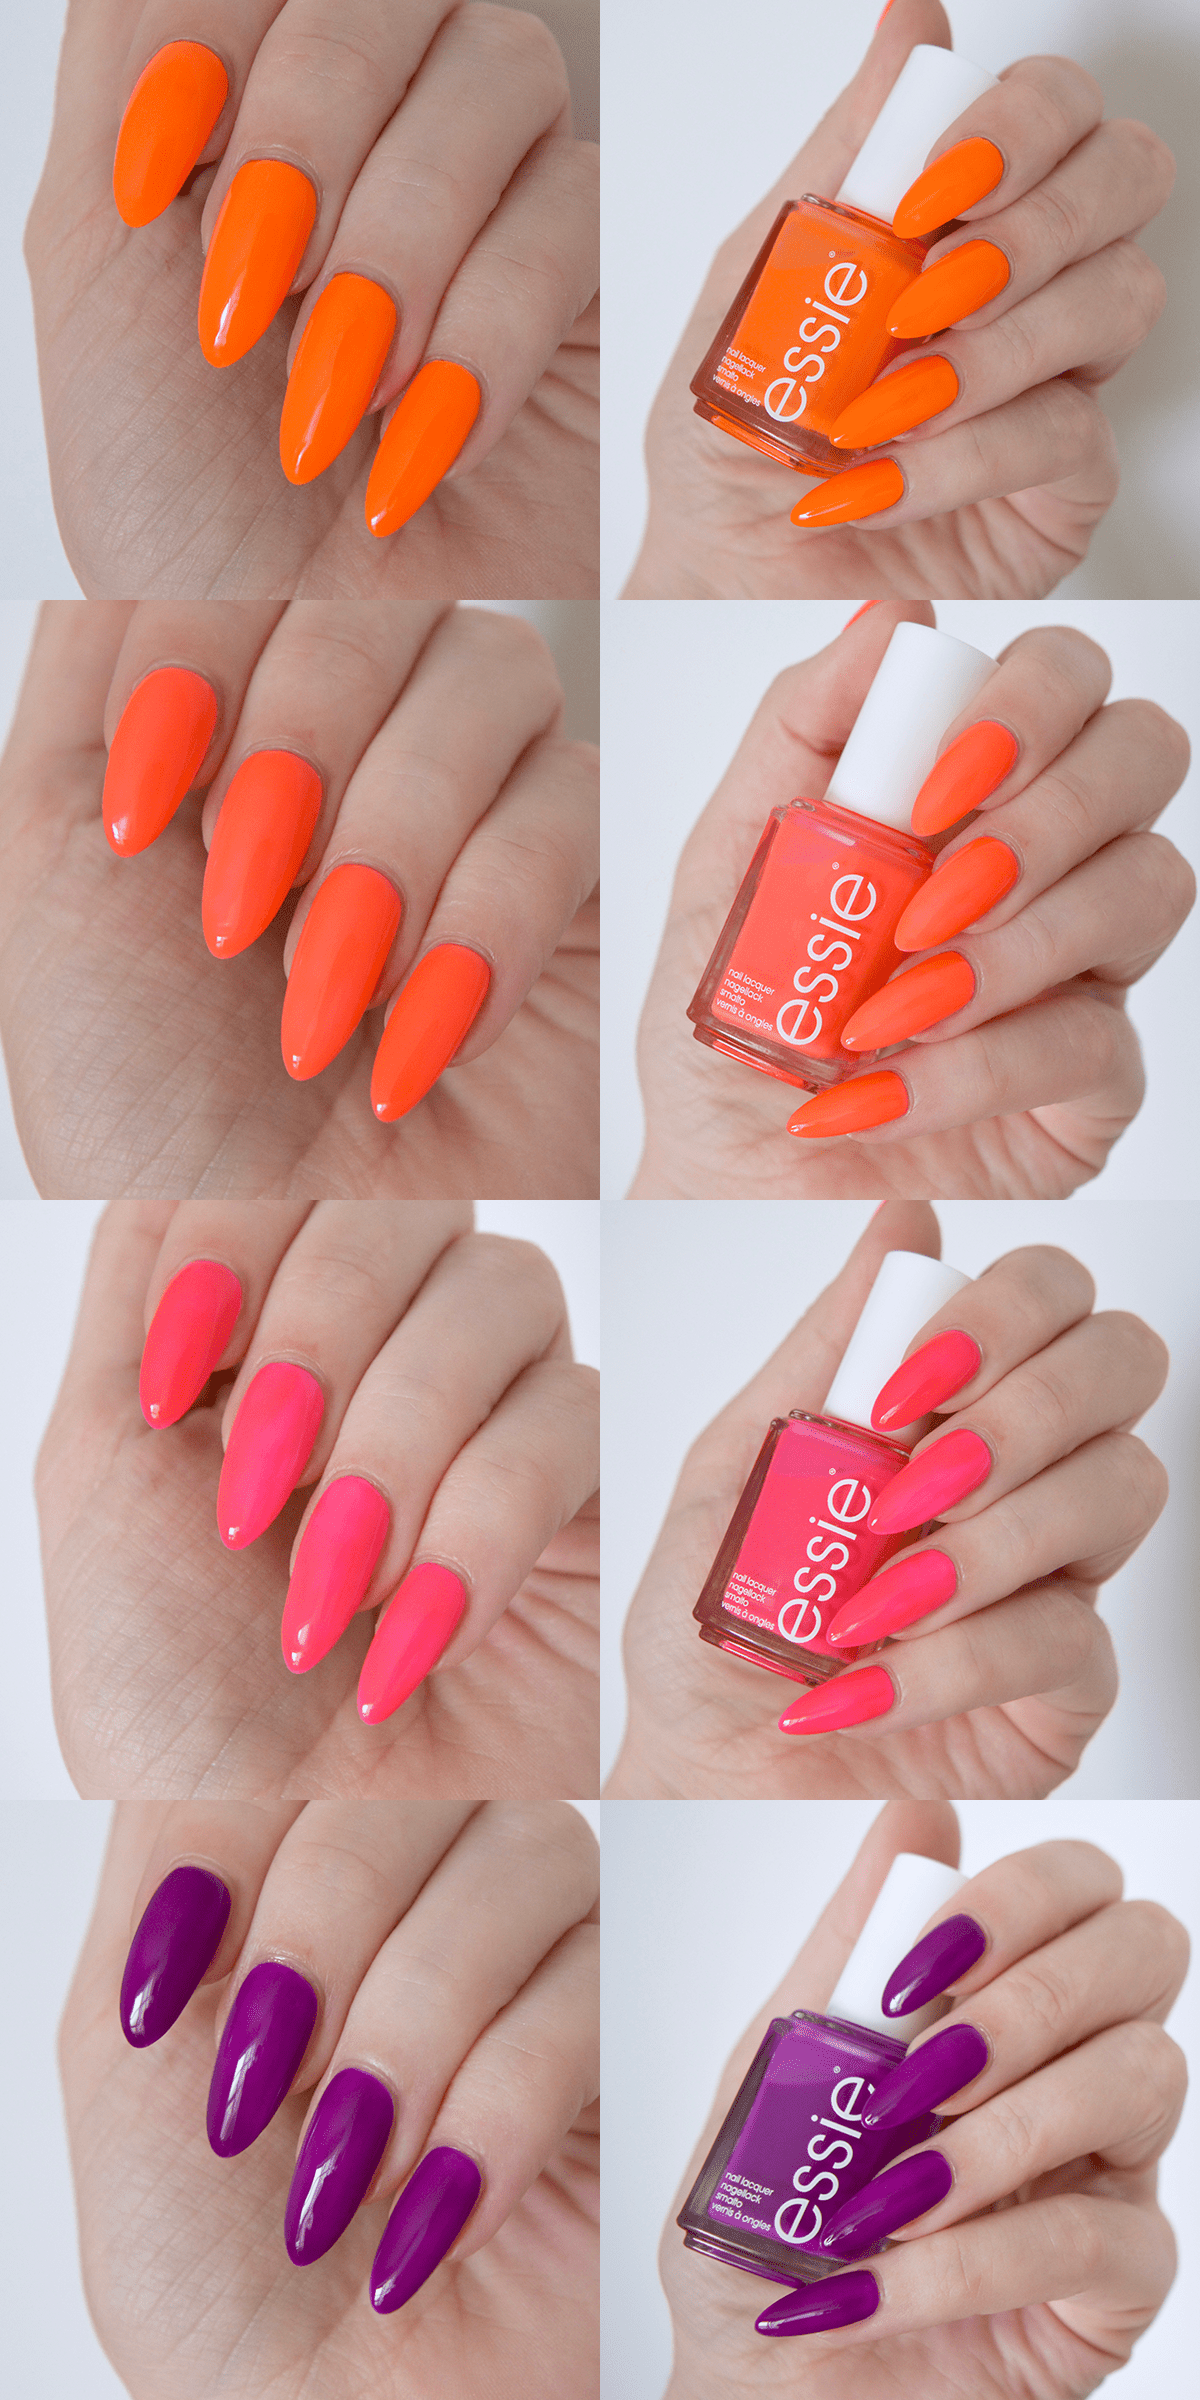 Essie Neon 2017 Review With Swatches | Swatch, Neon and Essie nail ...